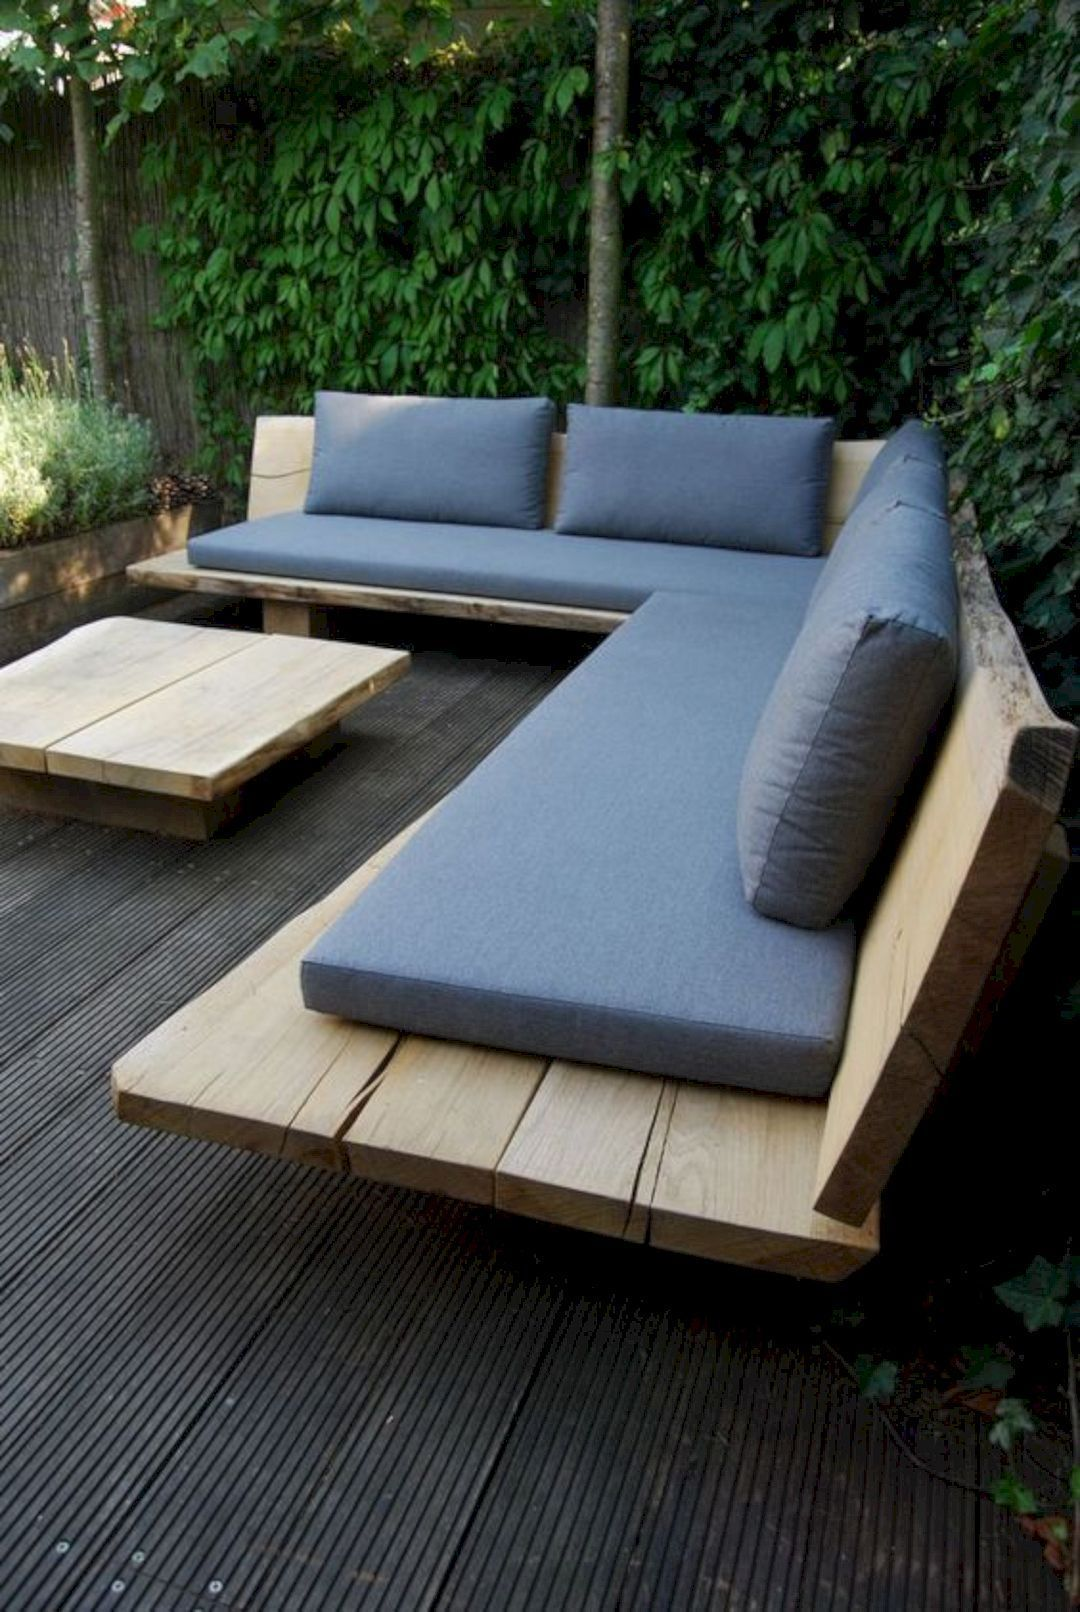 15 Incredible Furniture Ideas To Transform Your Backyard Furniture